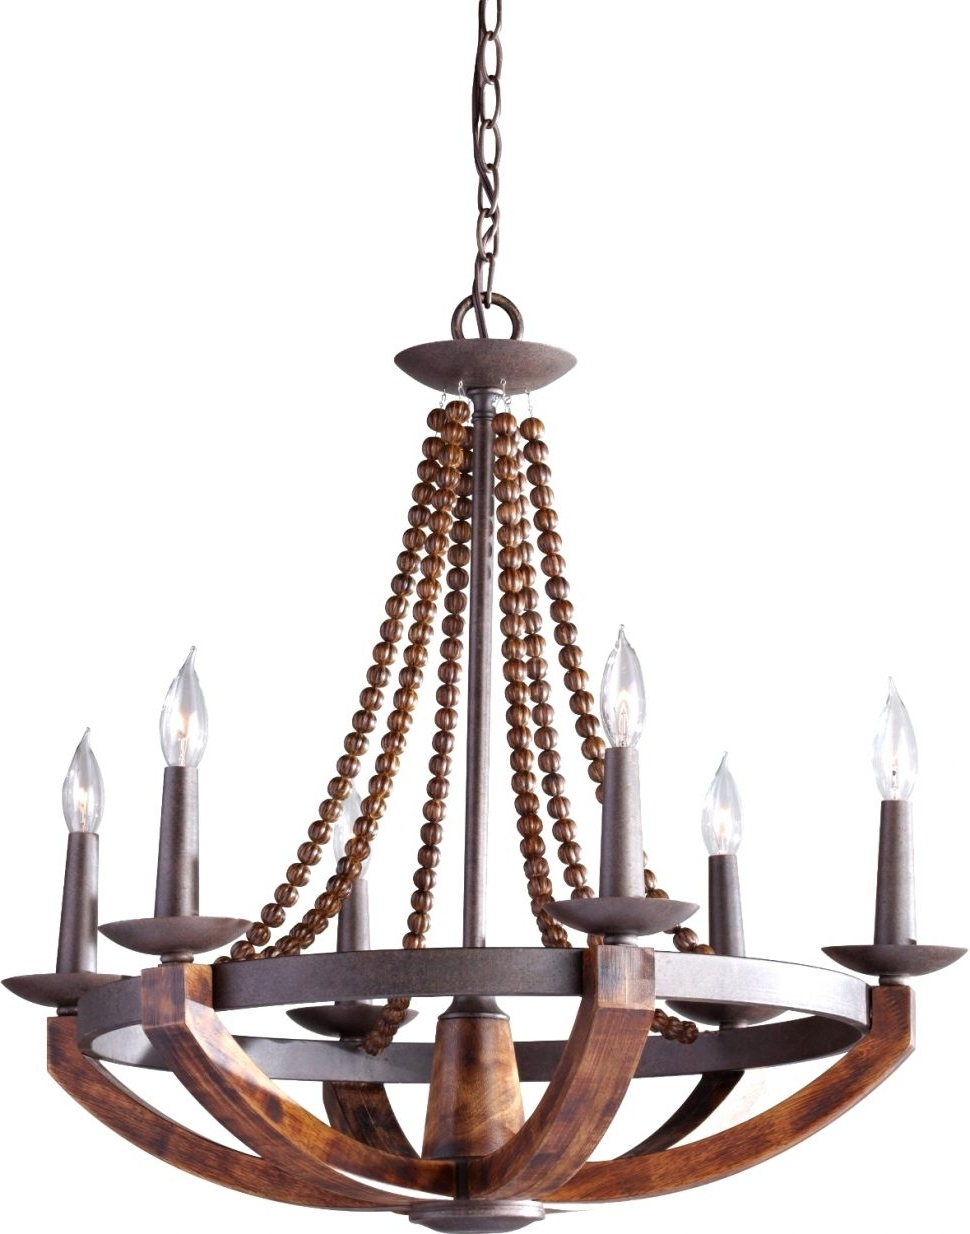 Widely Used Metal Chandeliers Throughout Light : Large Rustic Chandelier Lighting With Best Wood And Metal (View 6 of 15)